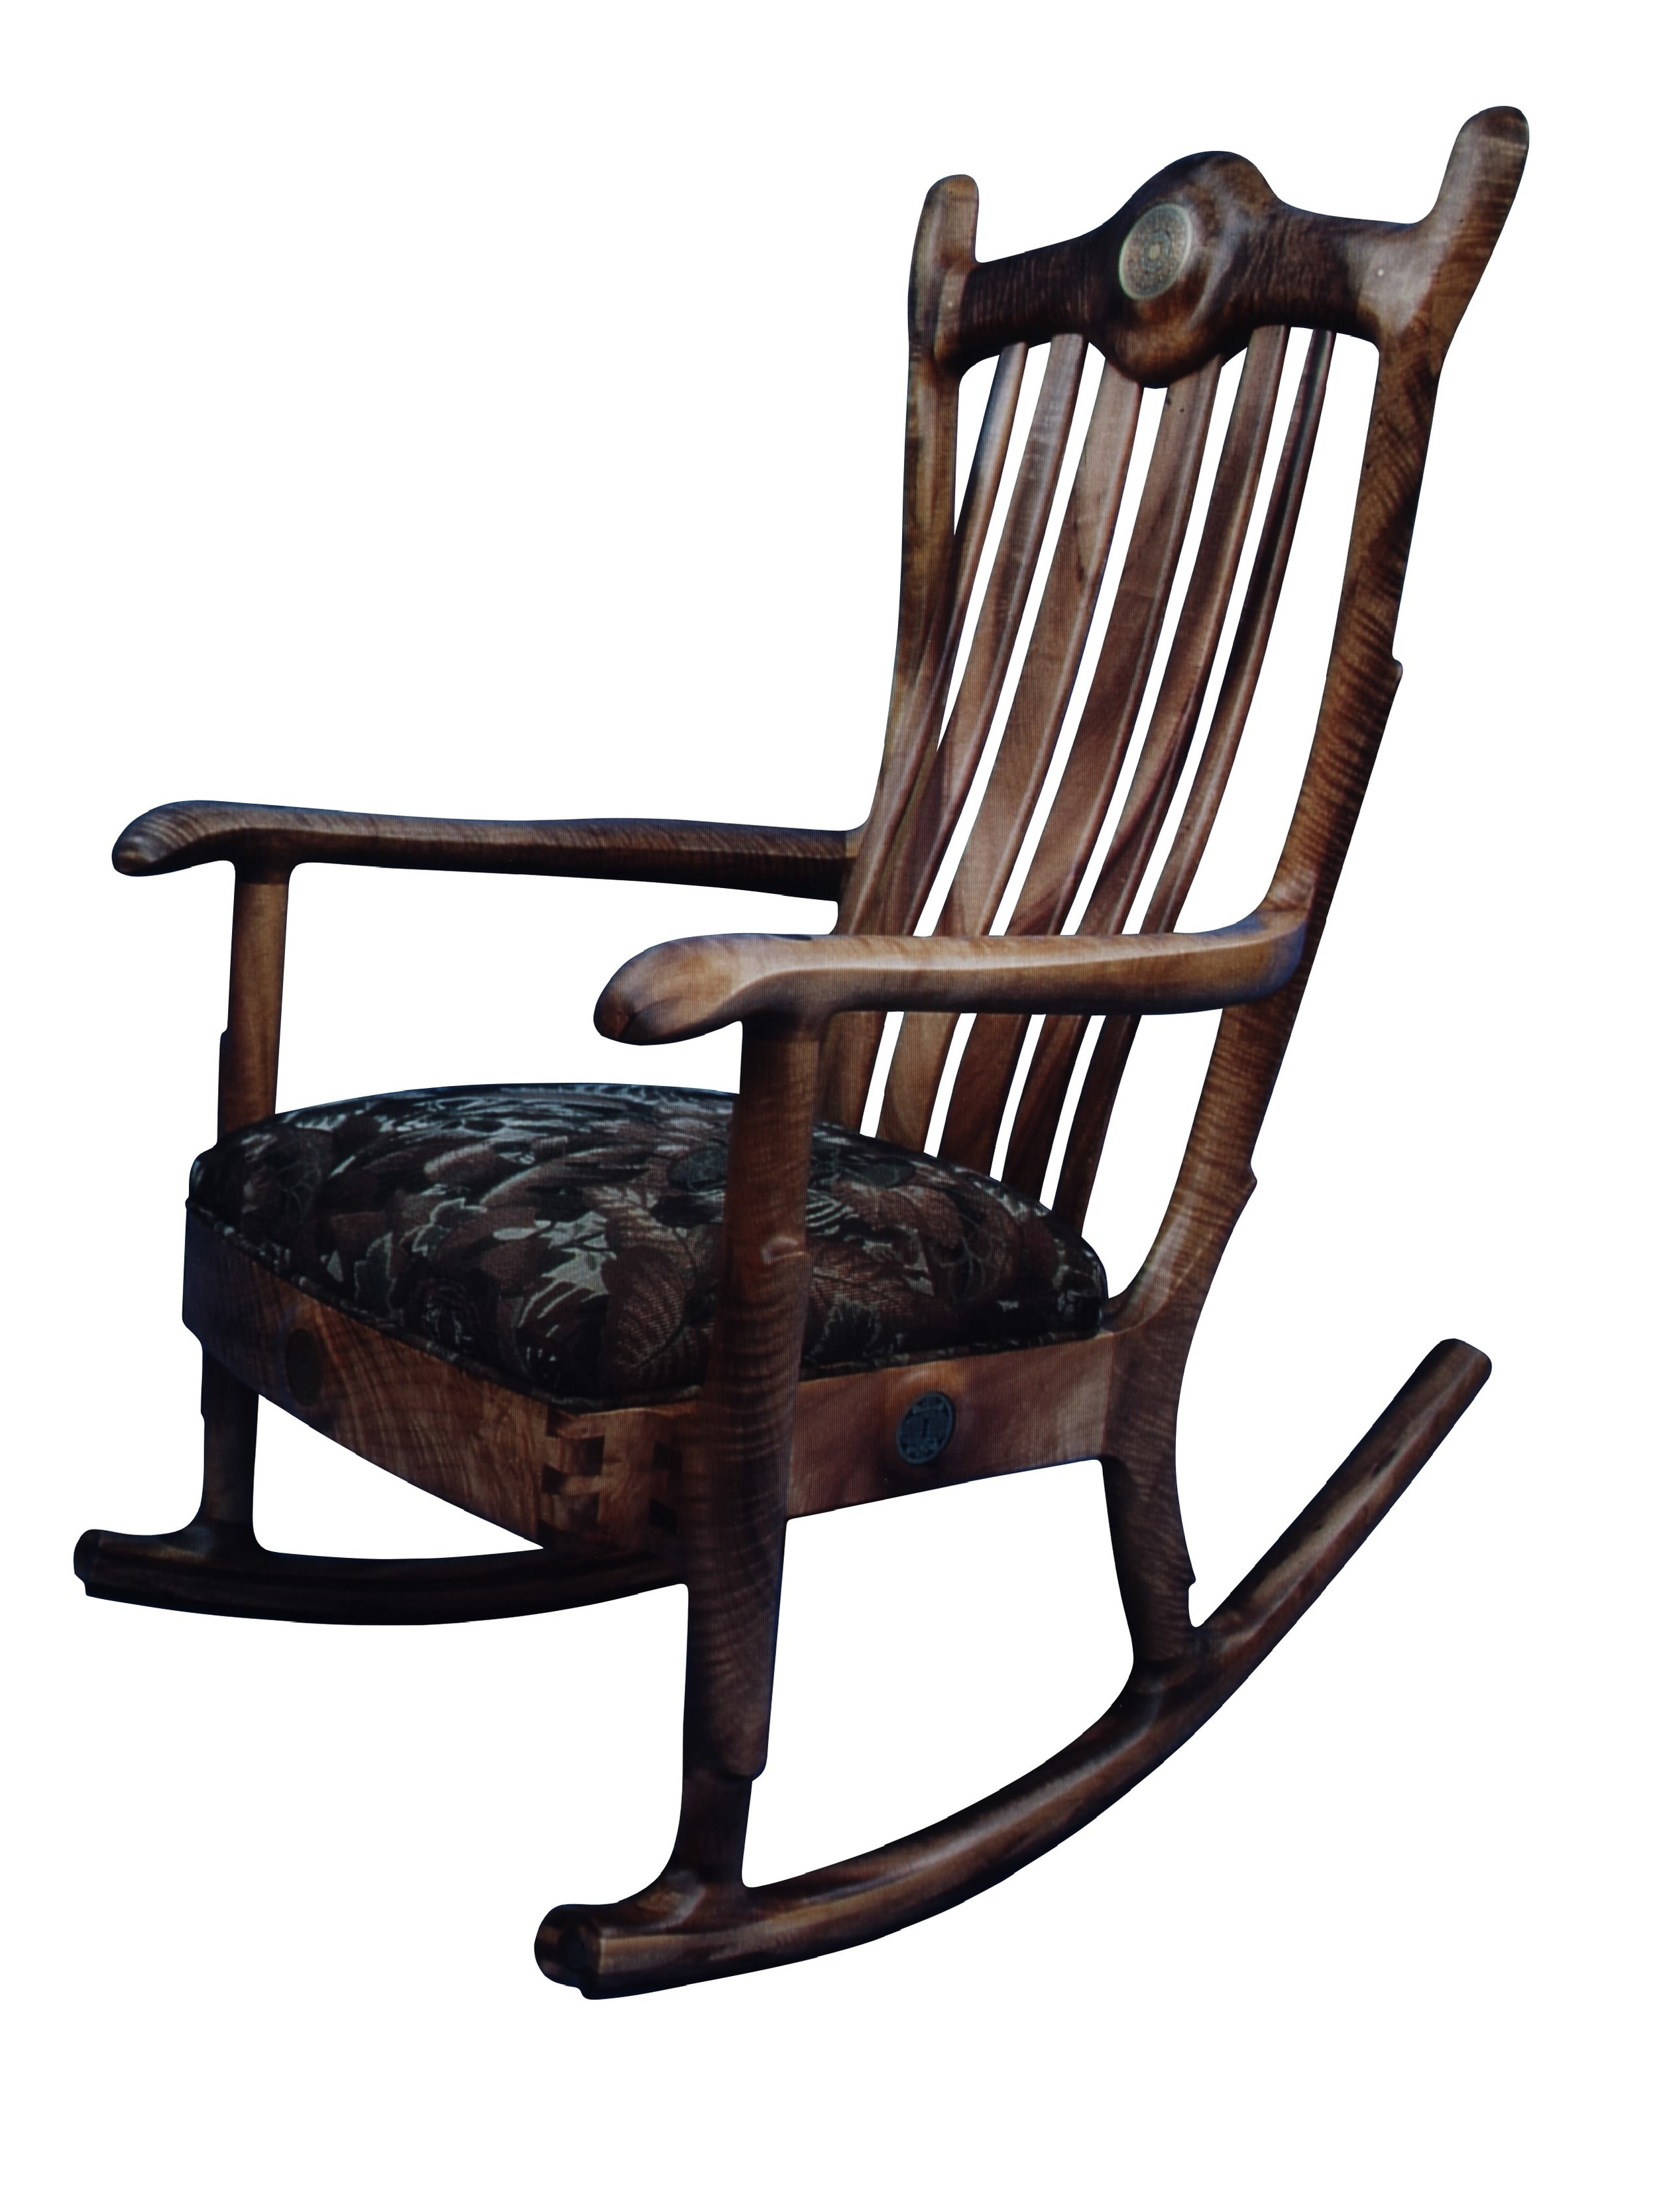 Wood Rocking Chair Custom Handmade Myrtle Wood Upholstered Seat Rocking Chair